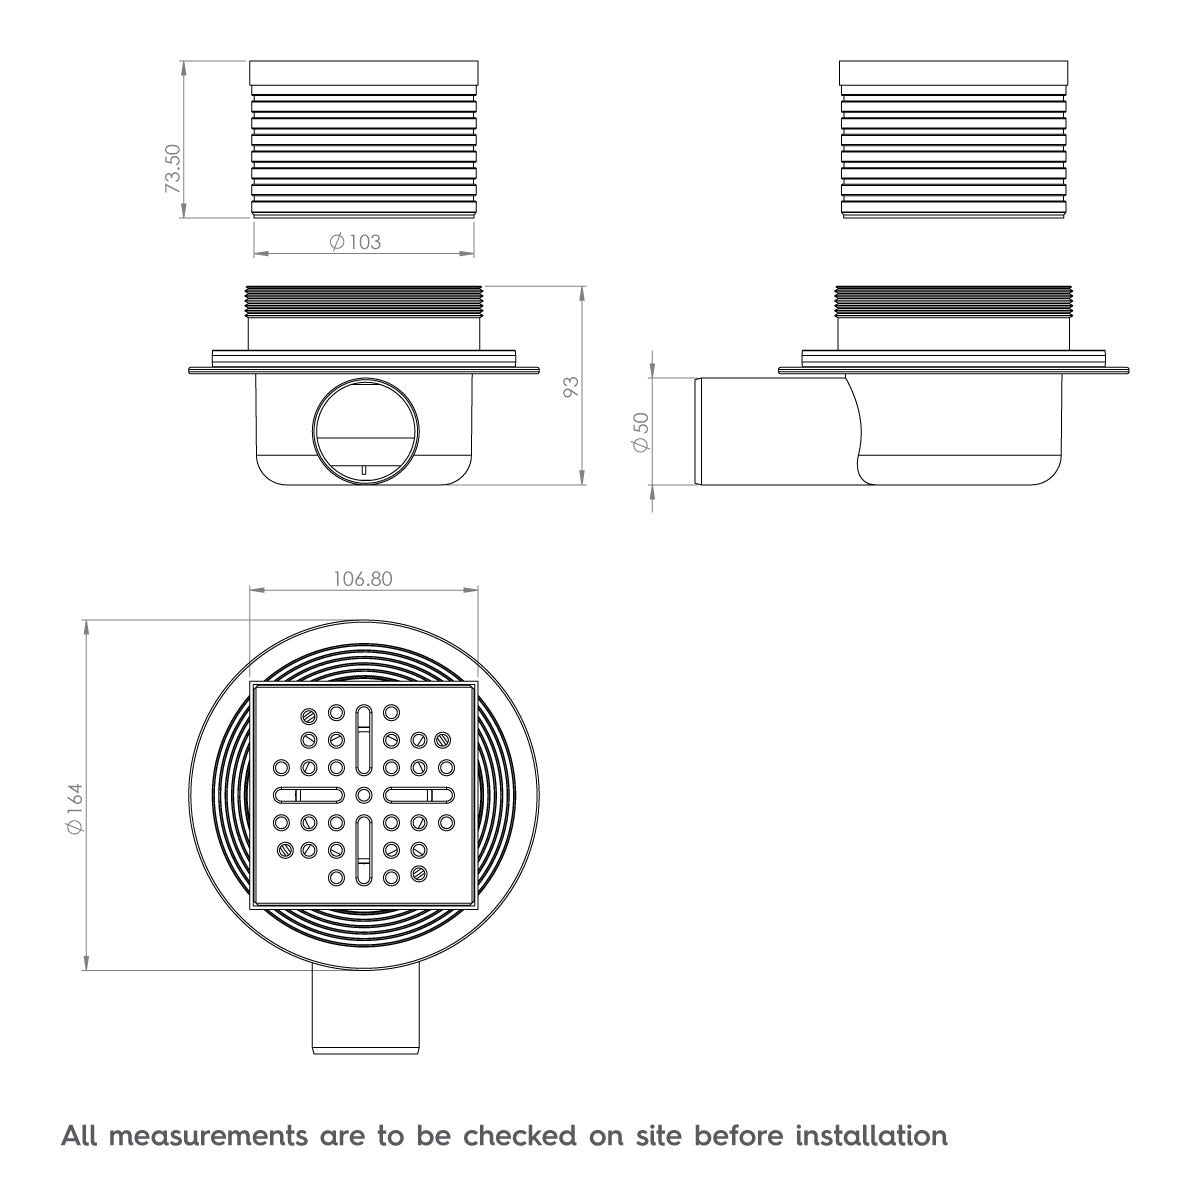 Dimensions for Wet Room Tray Waste and Installation Kit